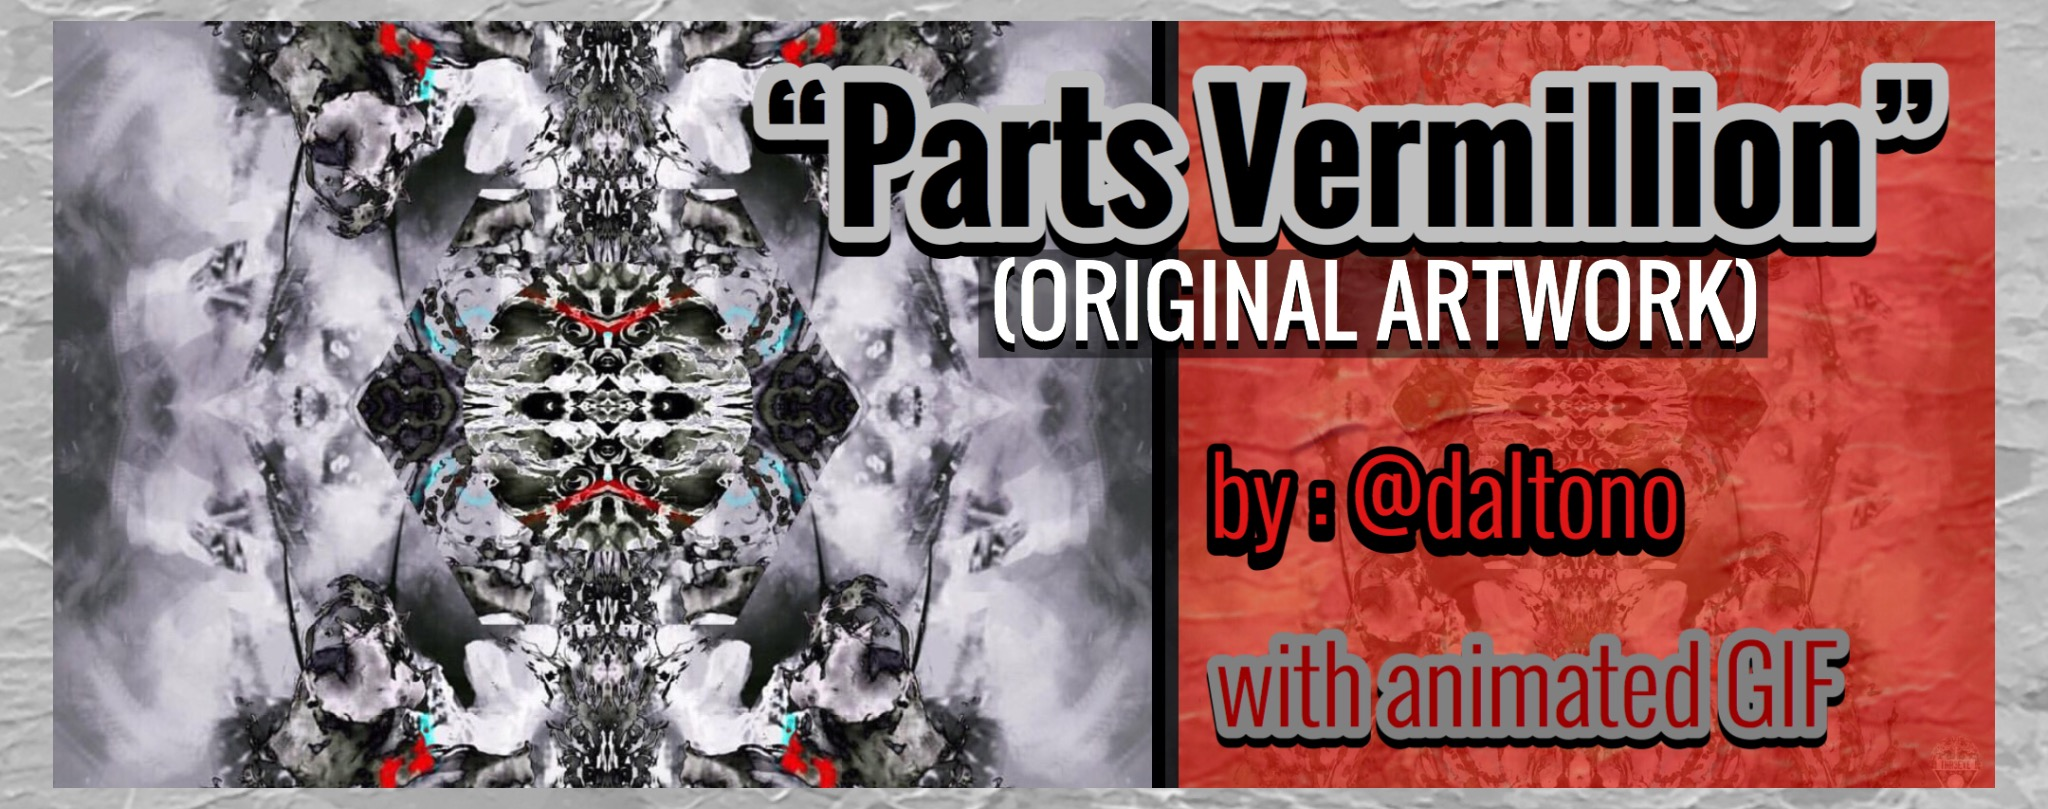 parts-vermillion-thumbnail.JPG